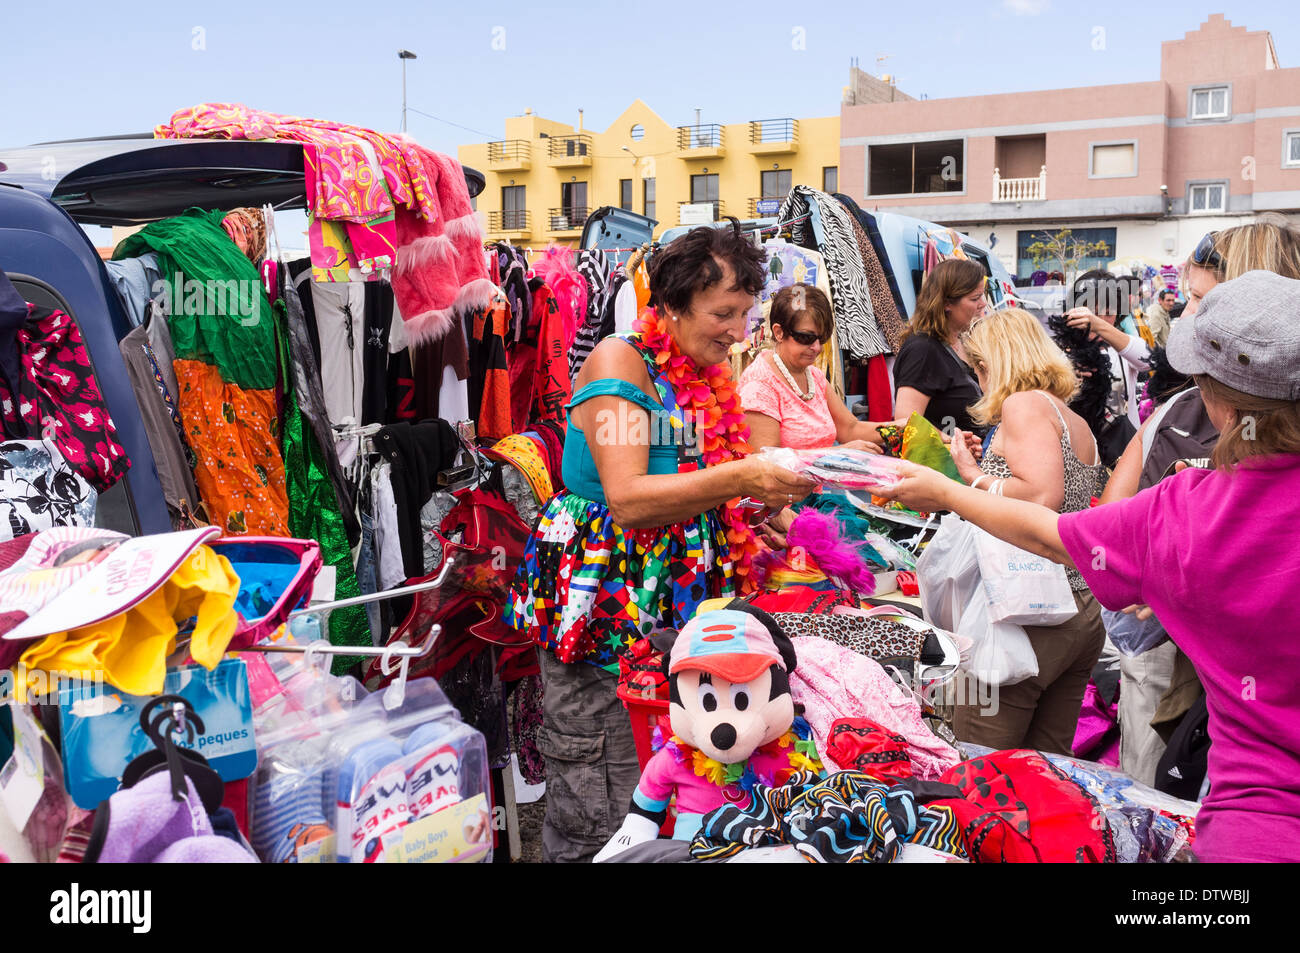 Stalls at the weekly car boot sale at Guargacho in Tenerife, Canary Islands, Spain. - Stock Image